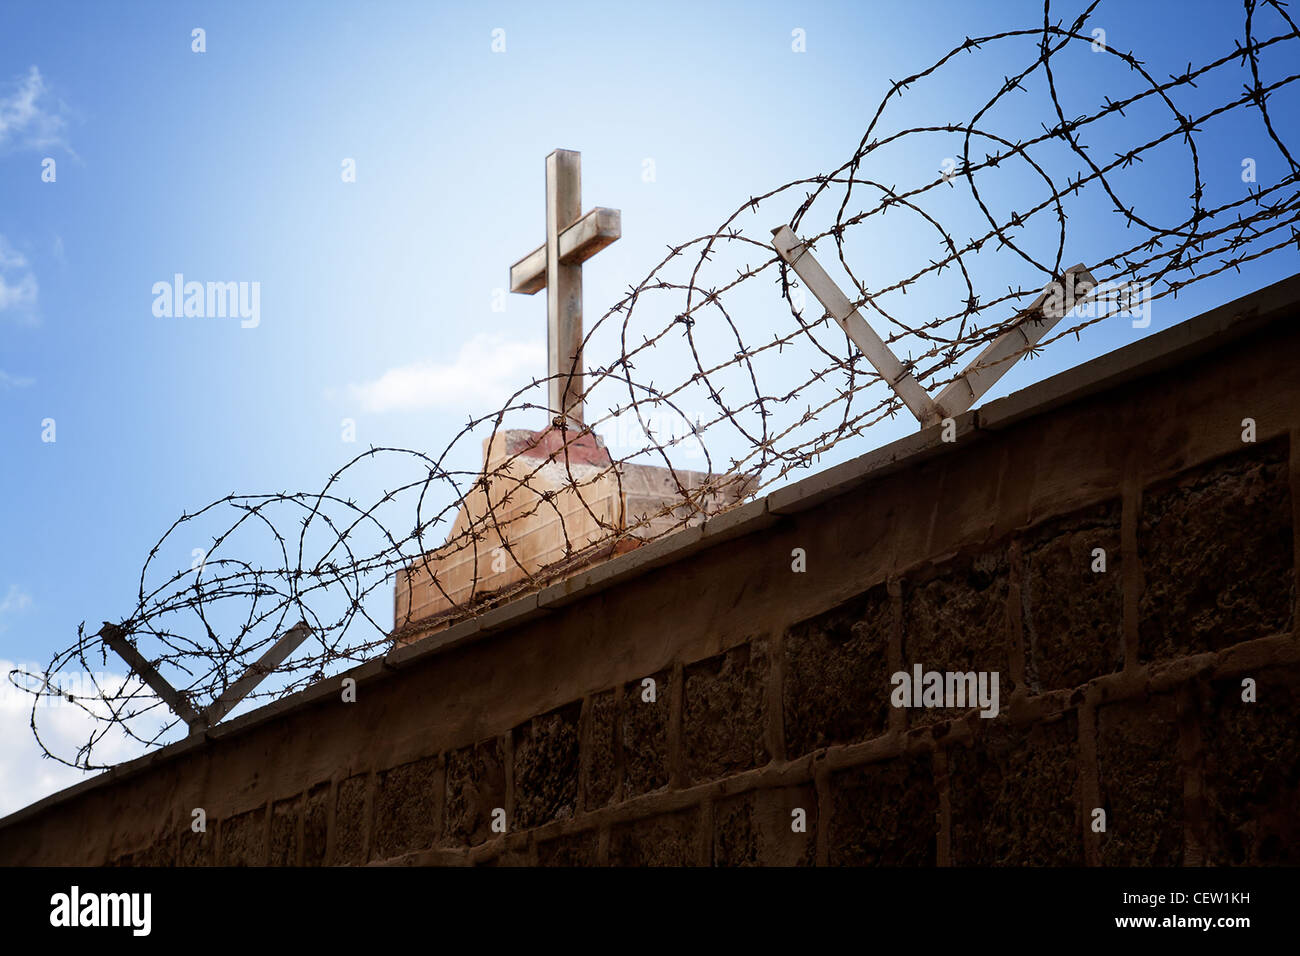 War and religion concept - Cross and barbed wire over blue sky - Stock Image